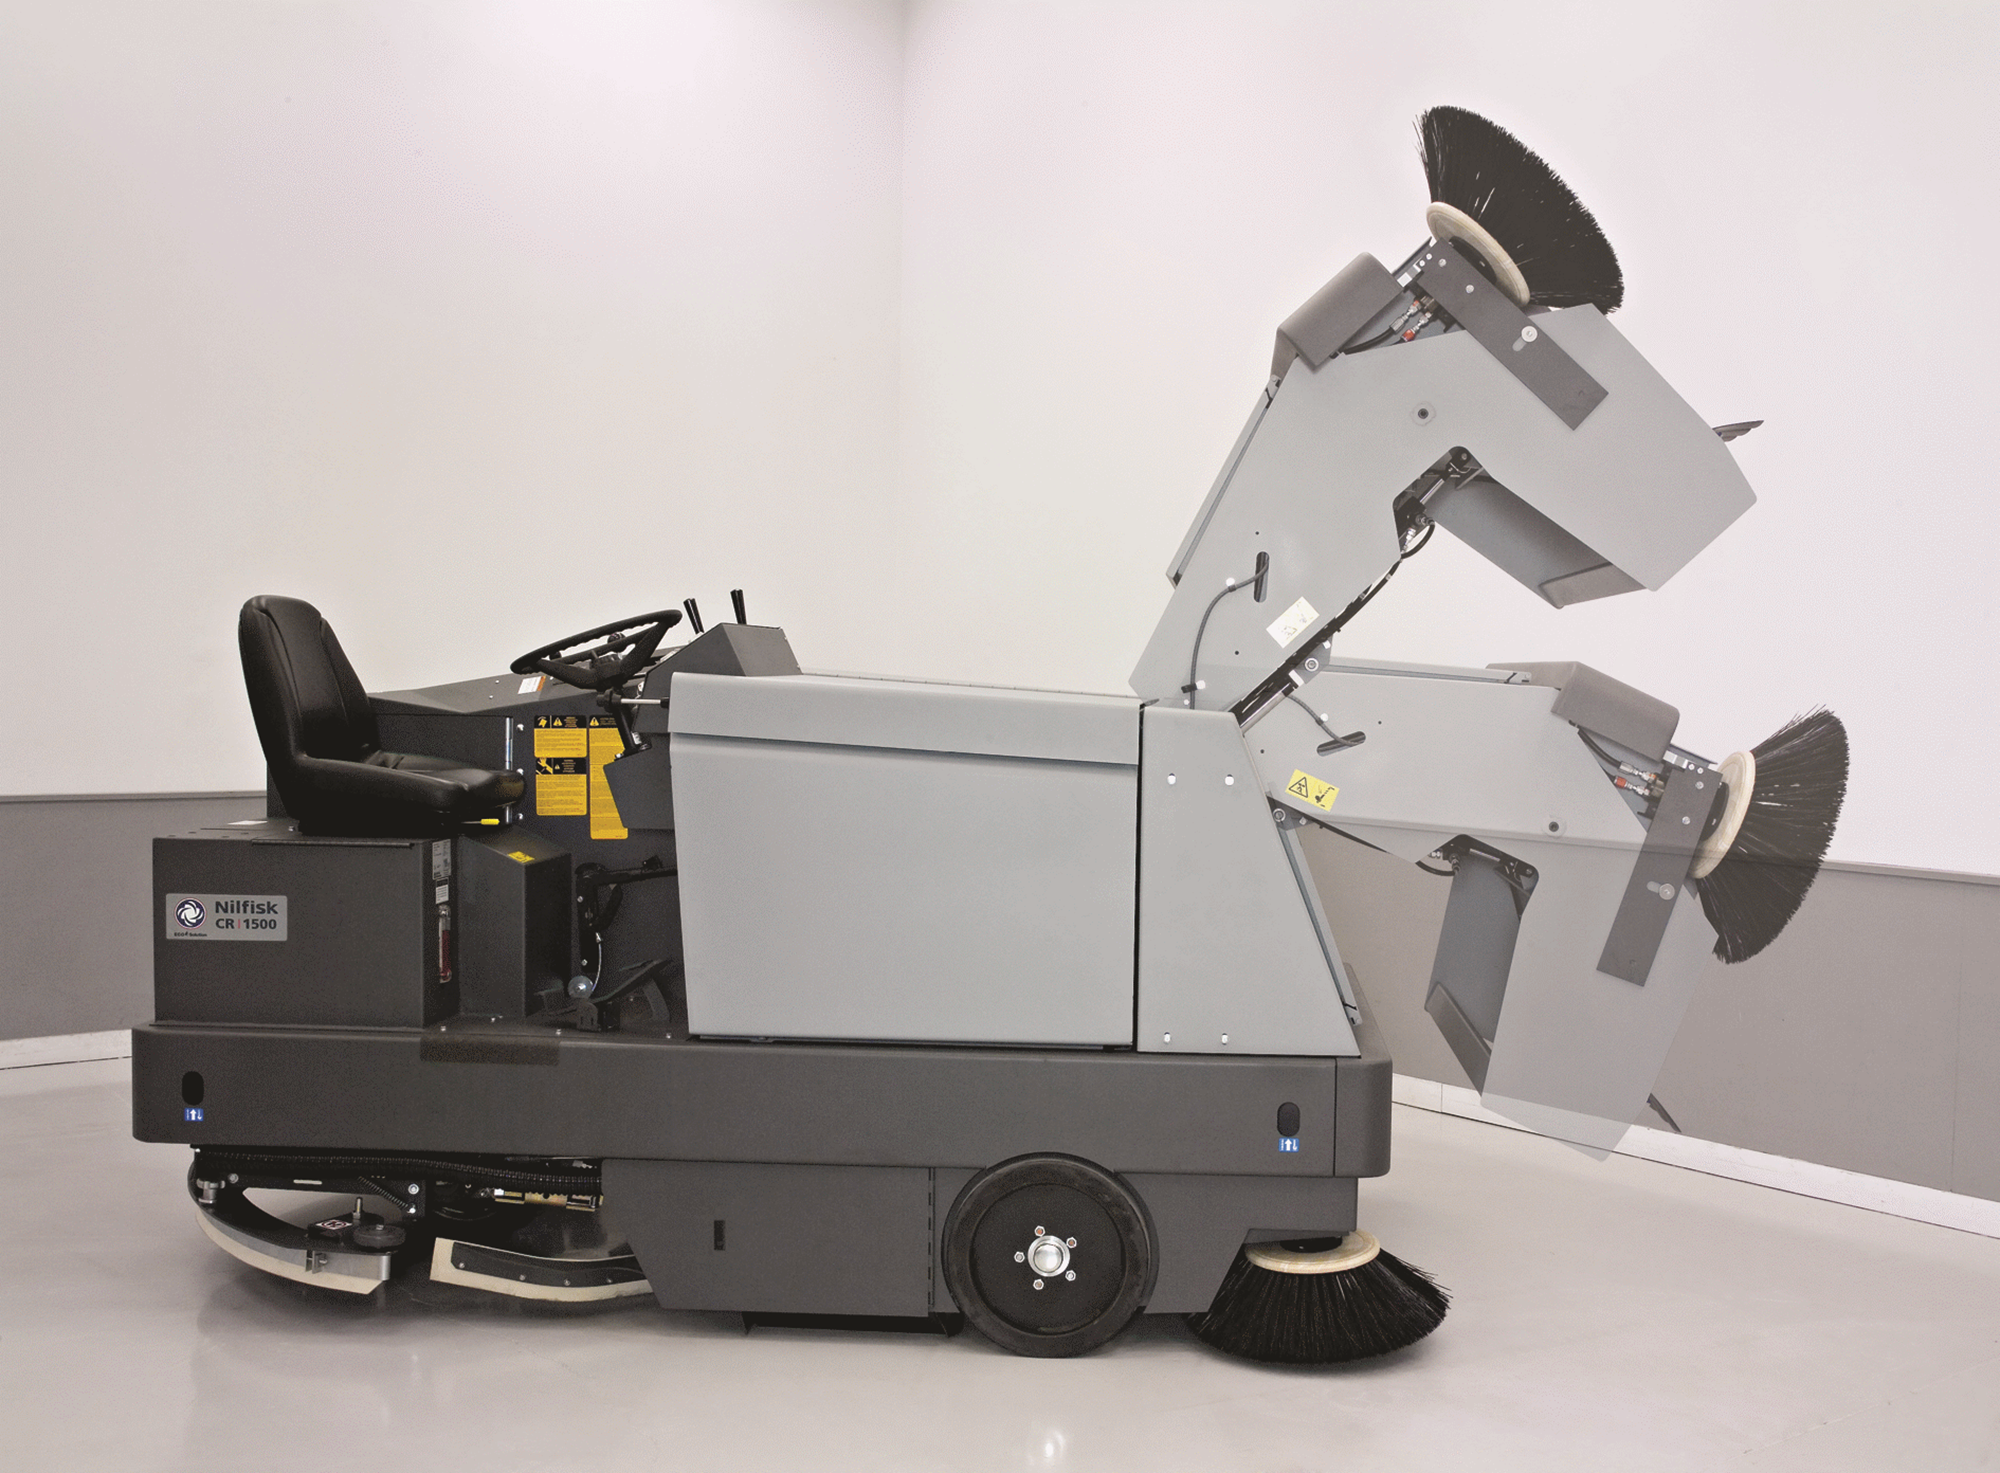 Product, Floor cleaning, Combination machines, Nilfisk, CR1500 LPG